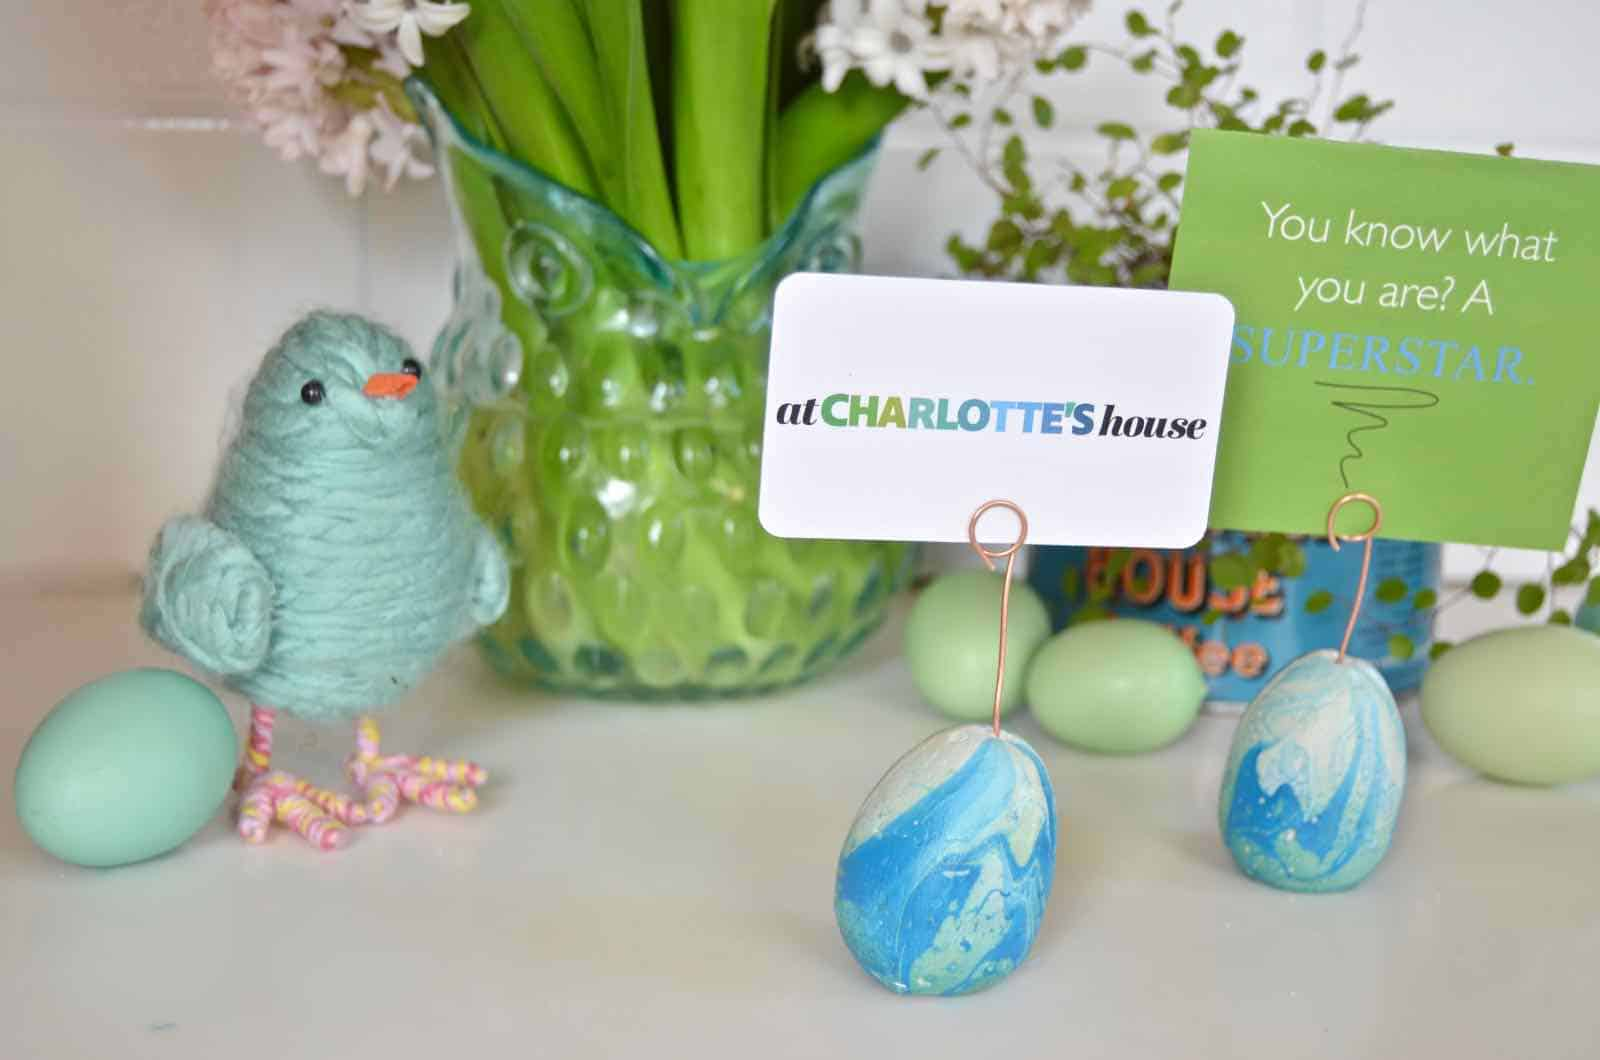 Plaster of paris DIY marbleized easter egg place card holders.